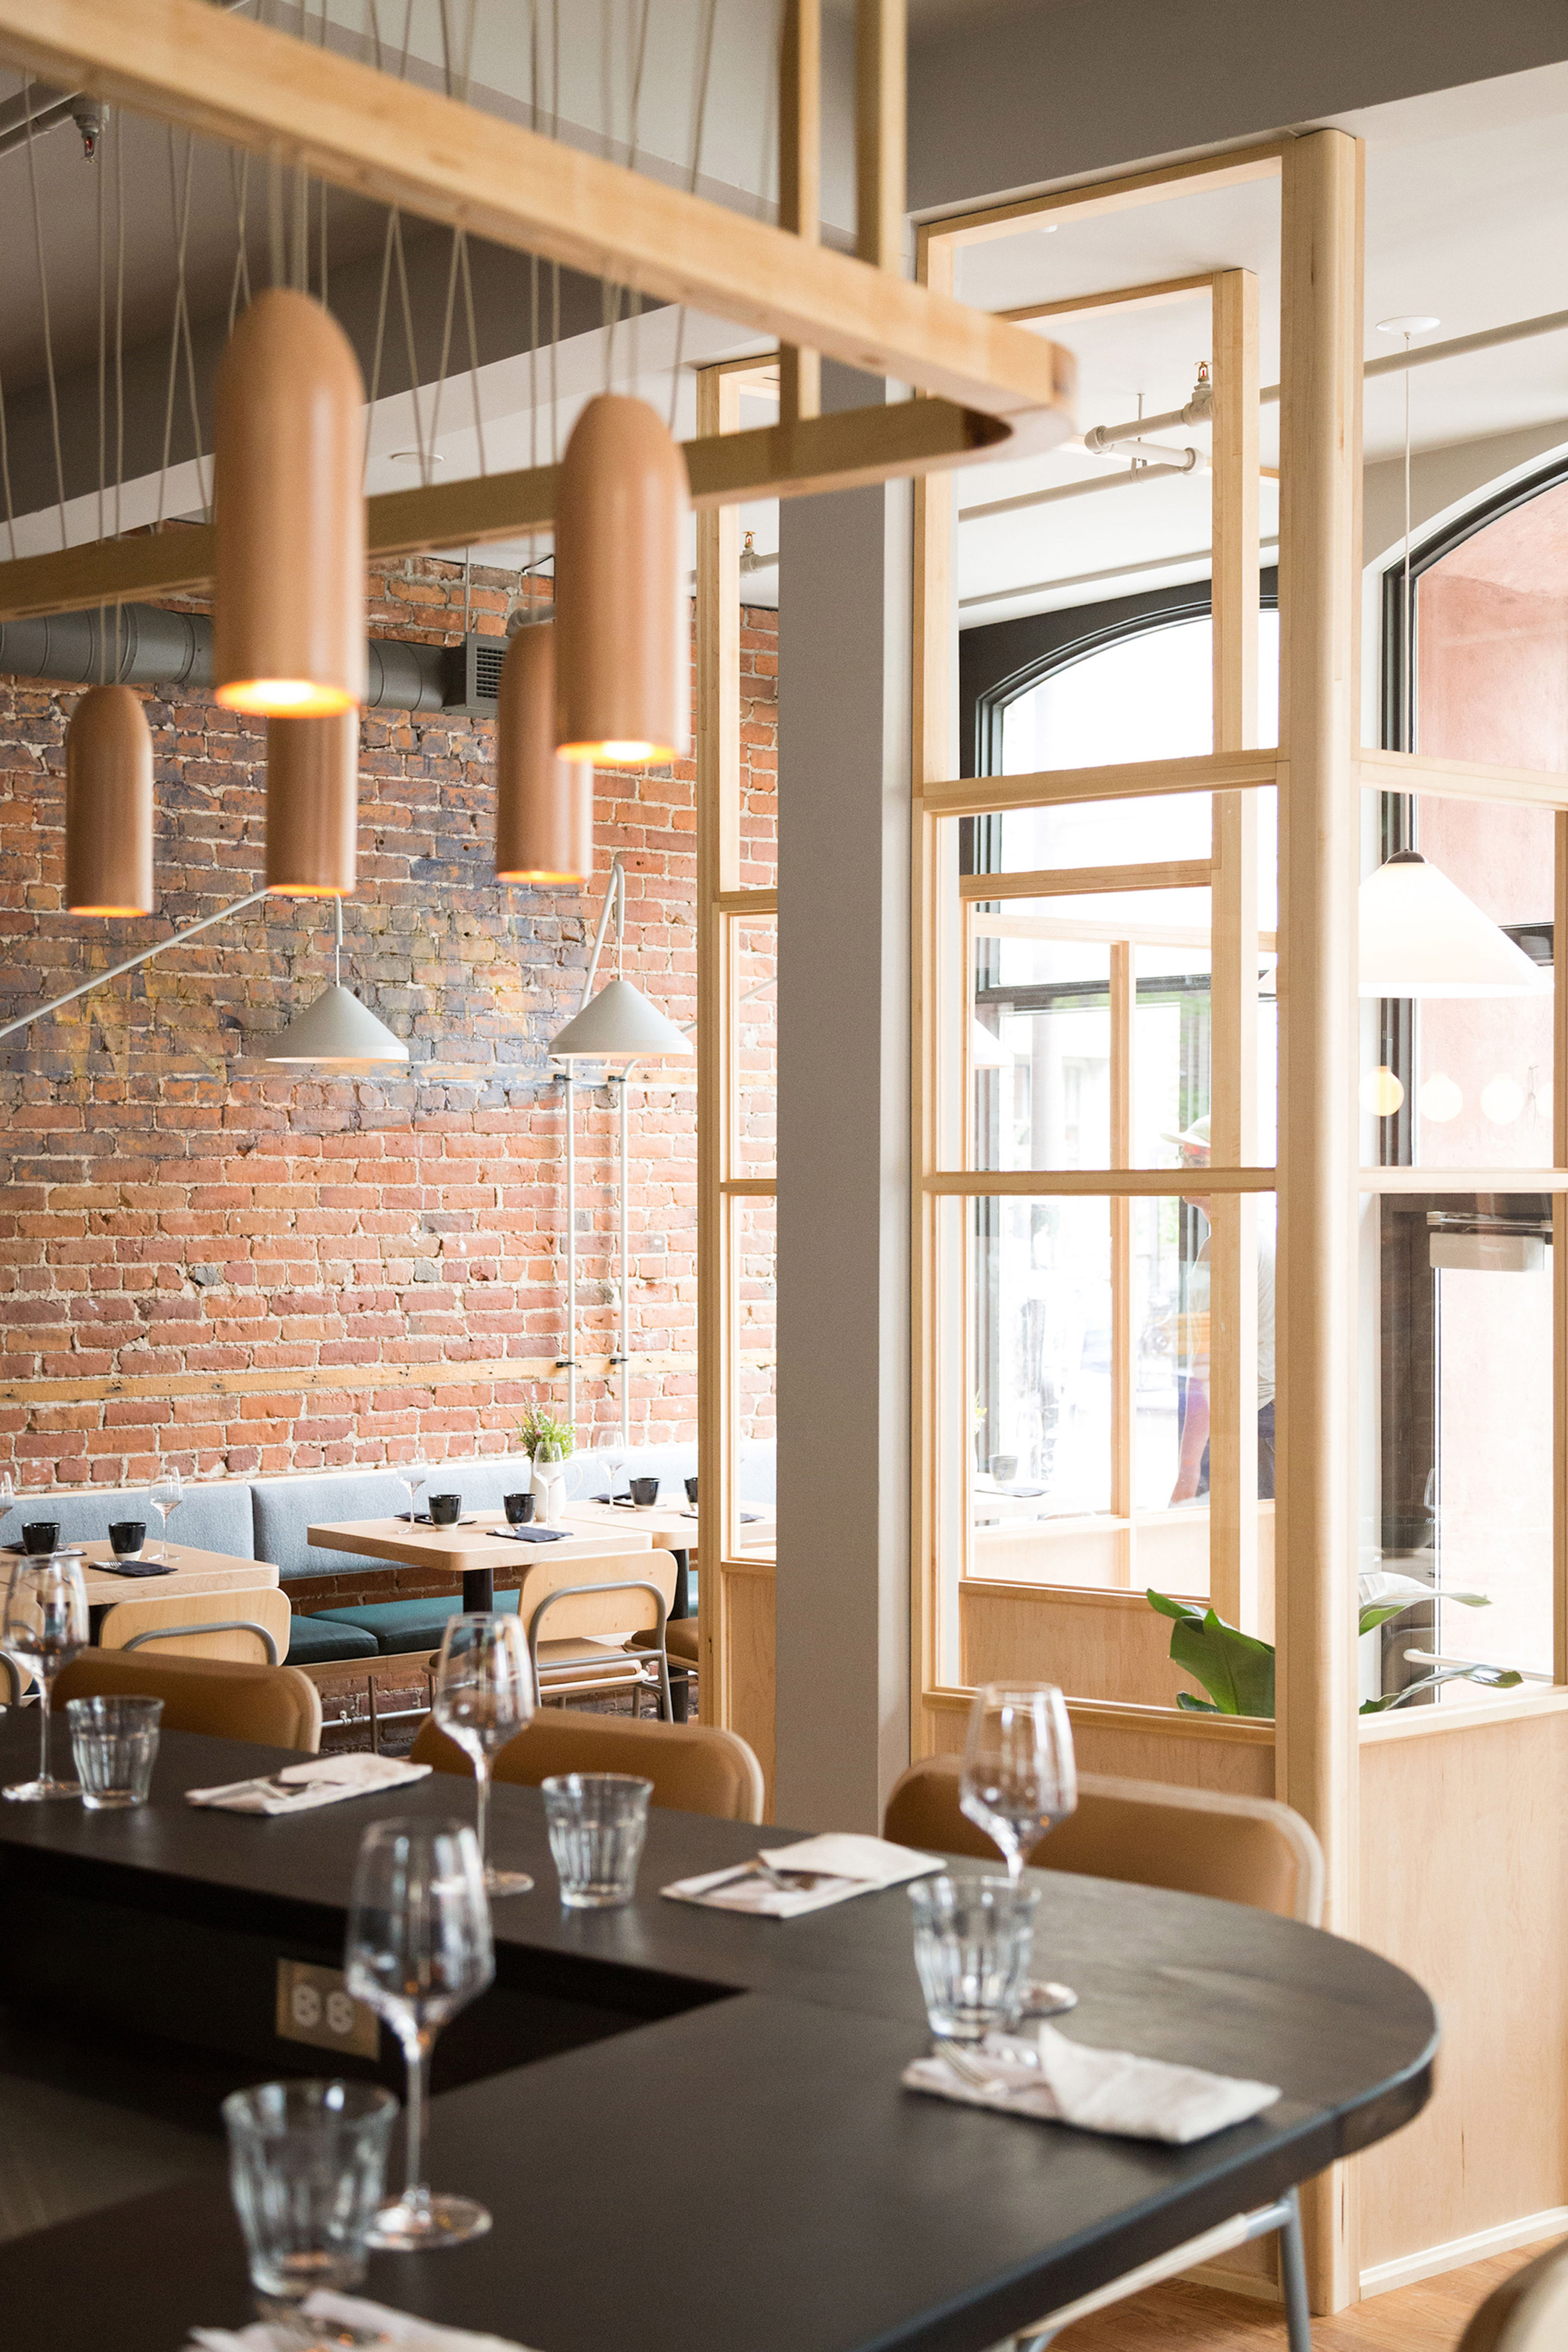 Atelier Filz designs bespoke lighting and chairs for restaurant in Quebec City